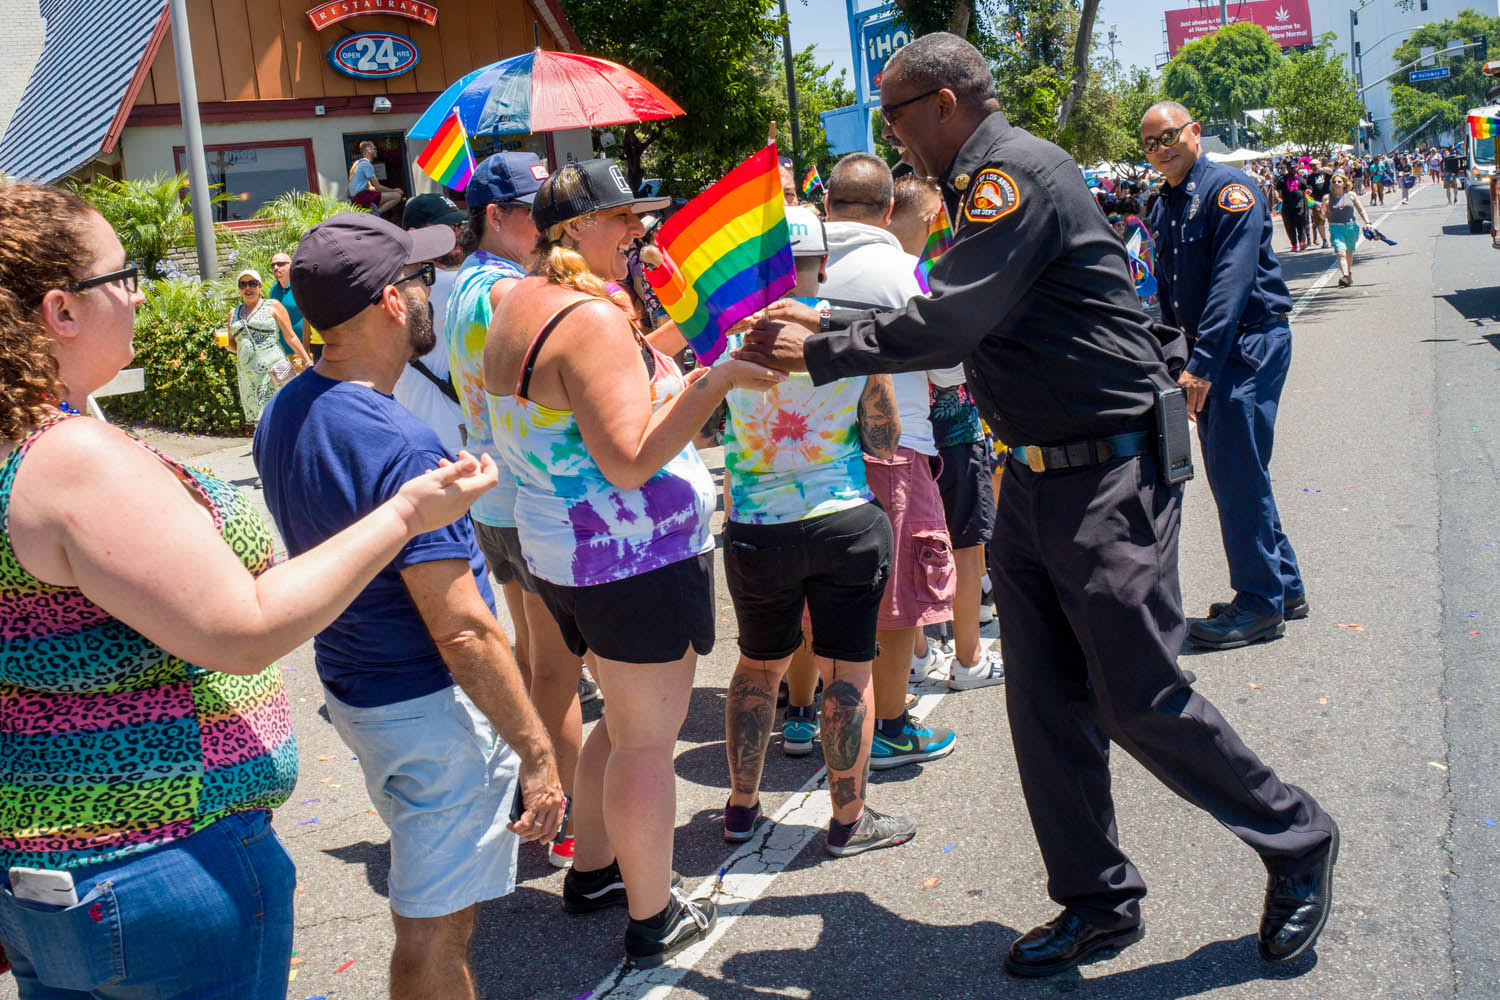 On Sunday, June 9, 2019, the Los Angeles County Fire Department (LACoFD) participated in the annual Los Angeles Pride Festival and Parade in West Hollywood.